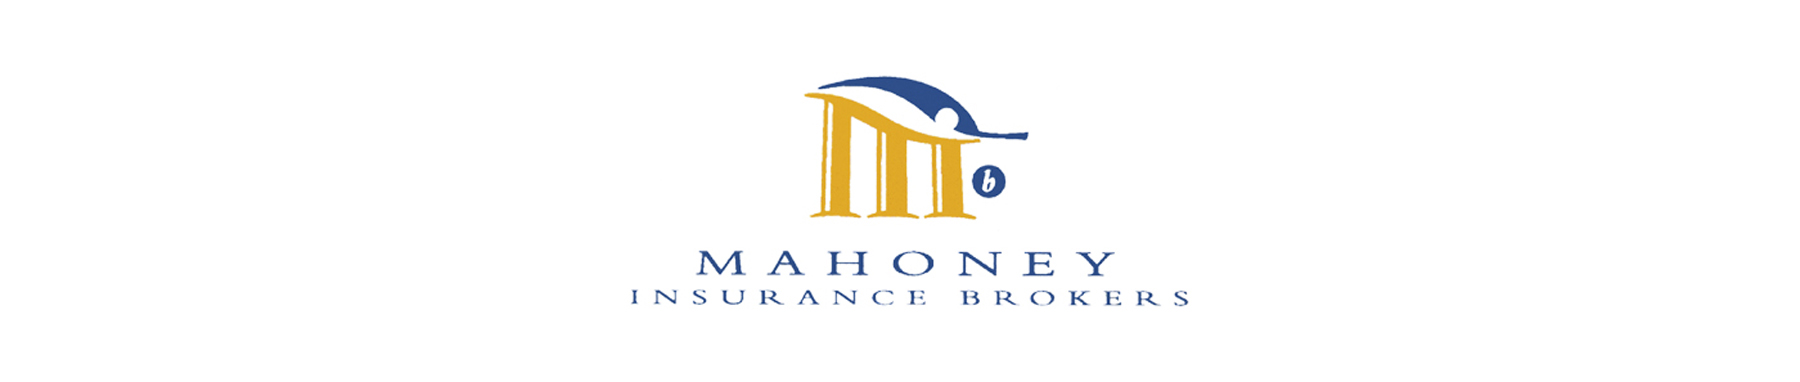 Mahoney Insurance banner on white background